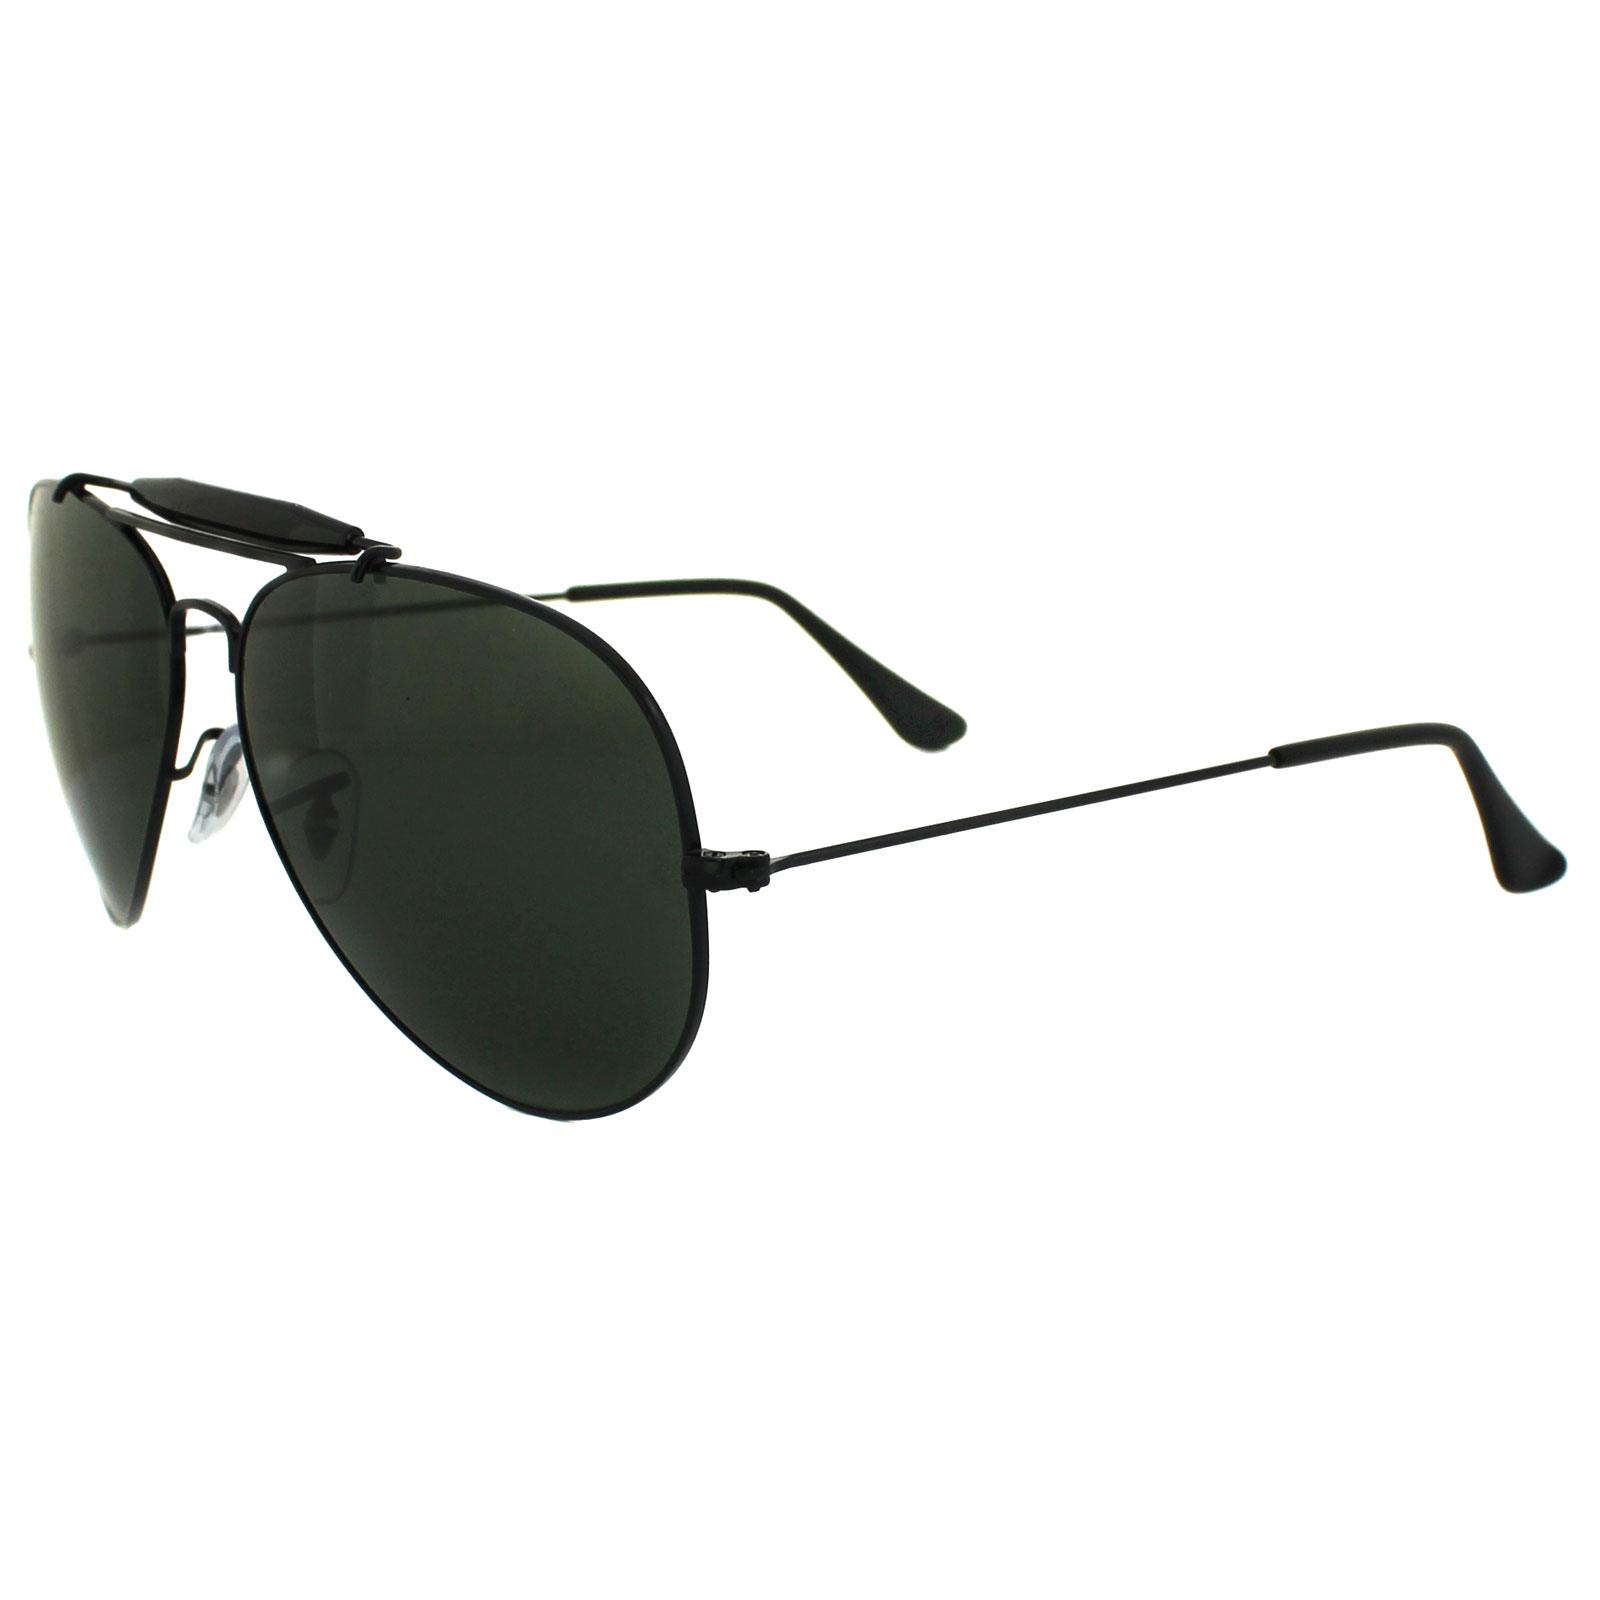 ray ban sunglasses clearance vrb1  ray ban sunglasses clearance